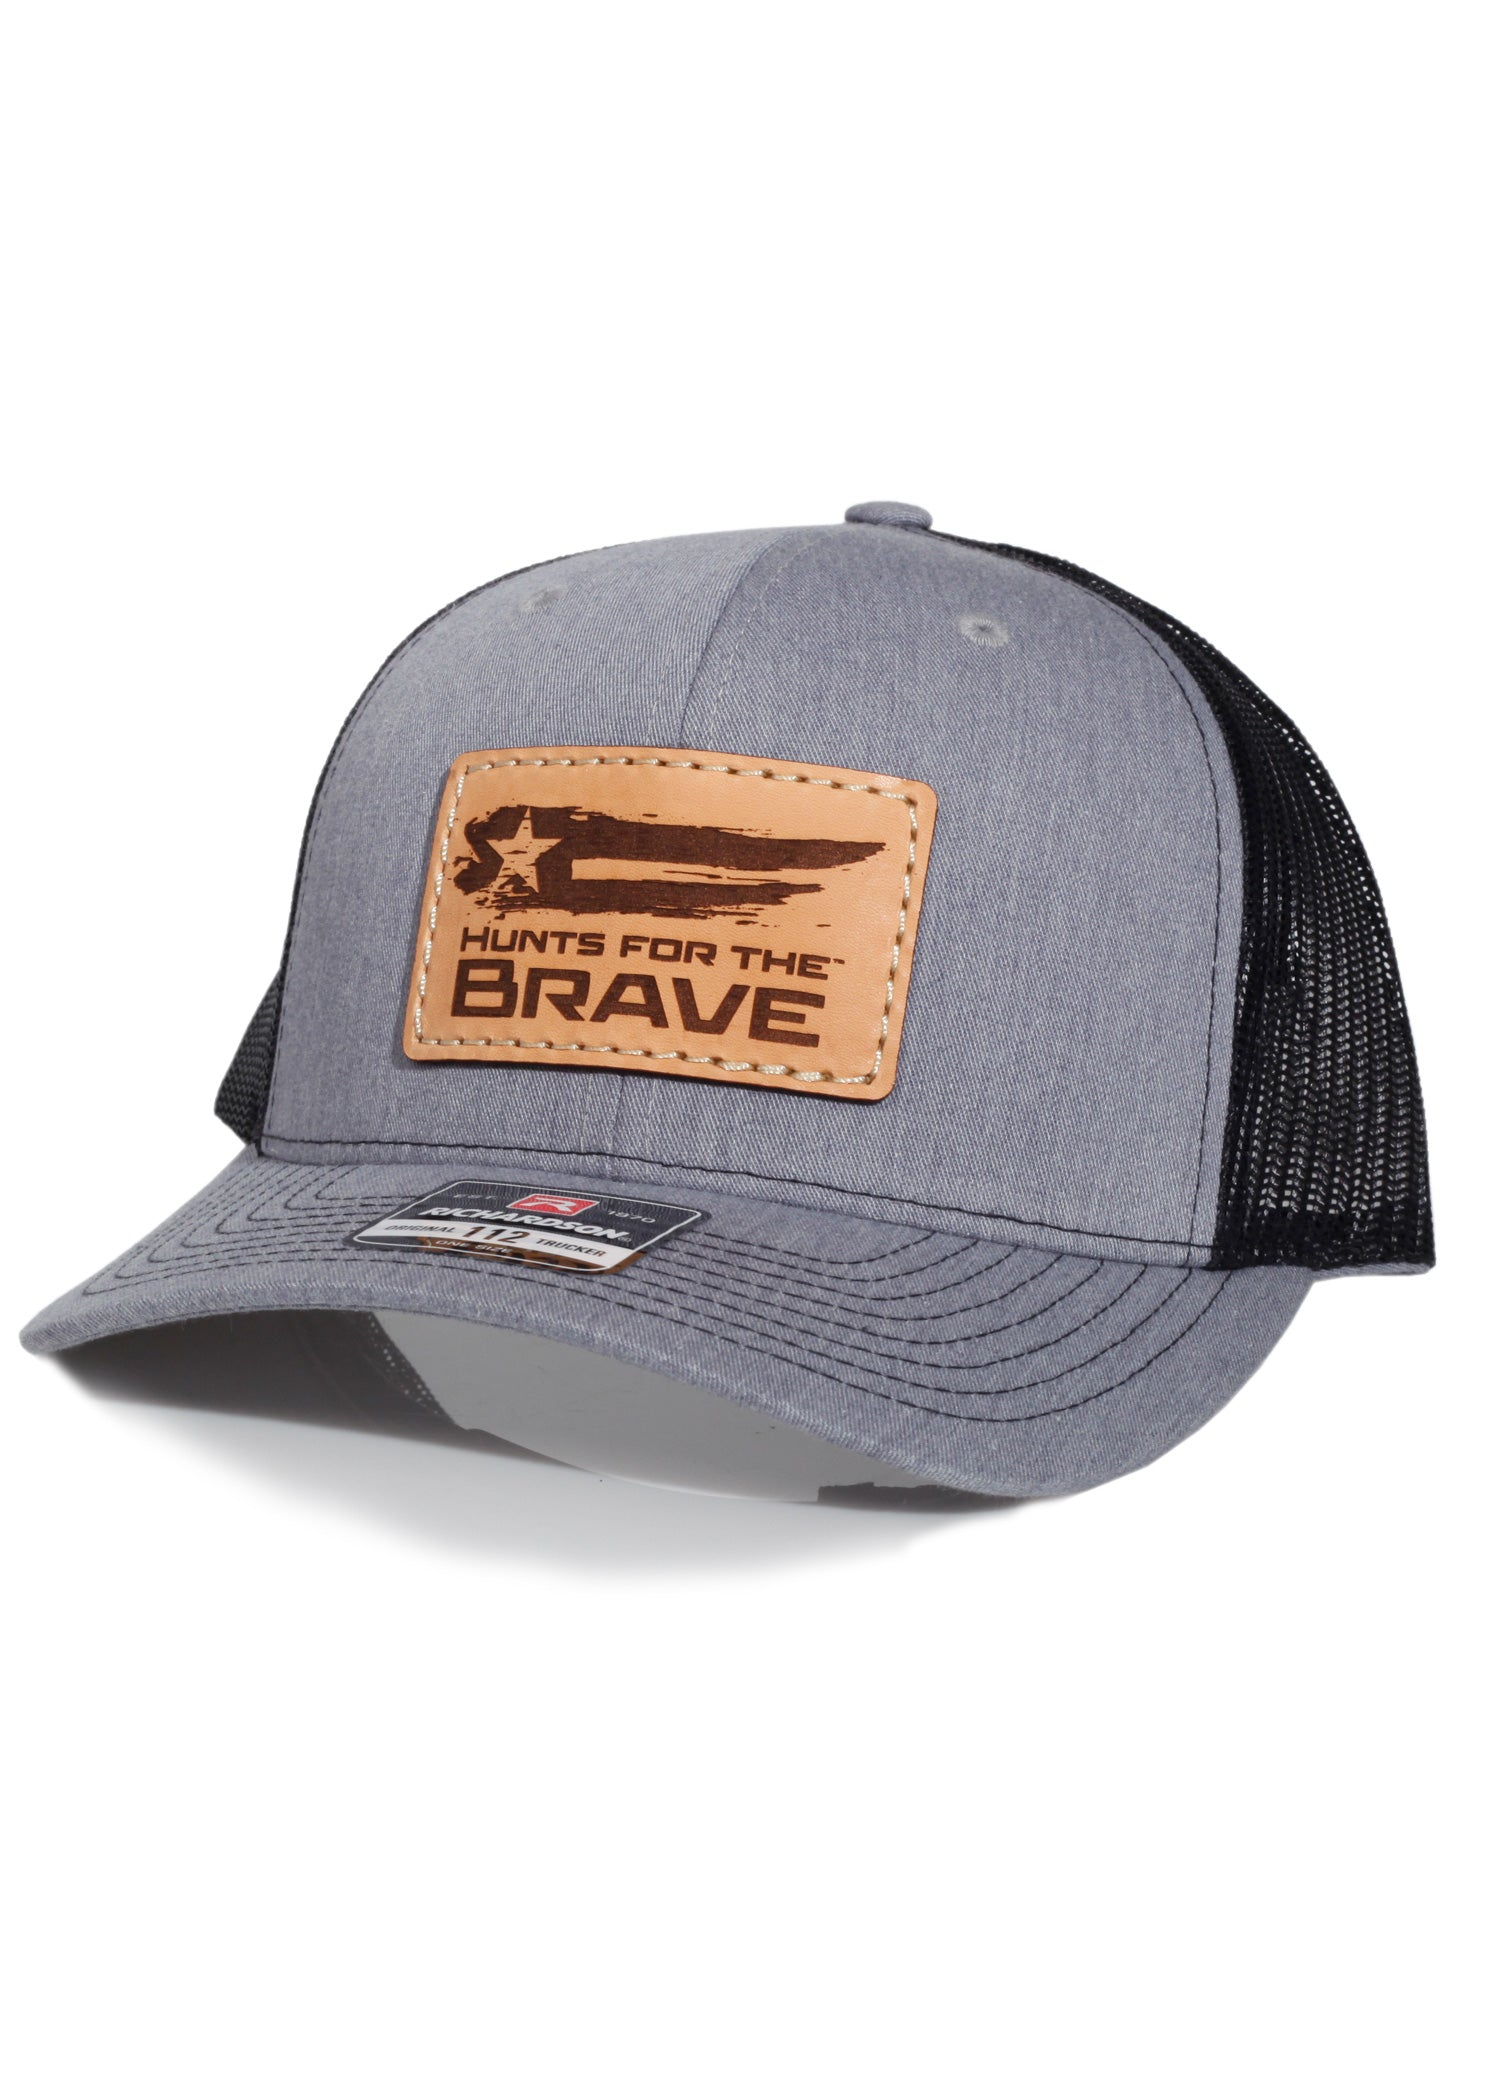 Hunts For the Brave - Richardson 112 Heather Grey/Black